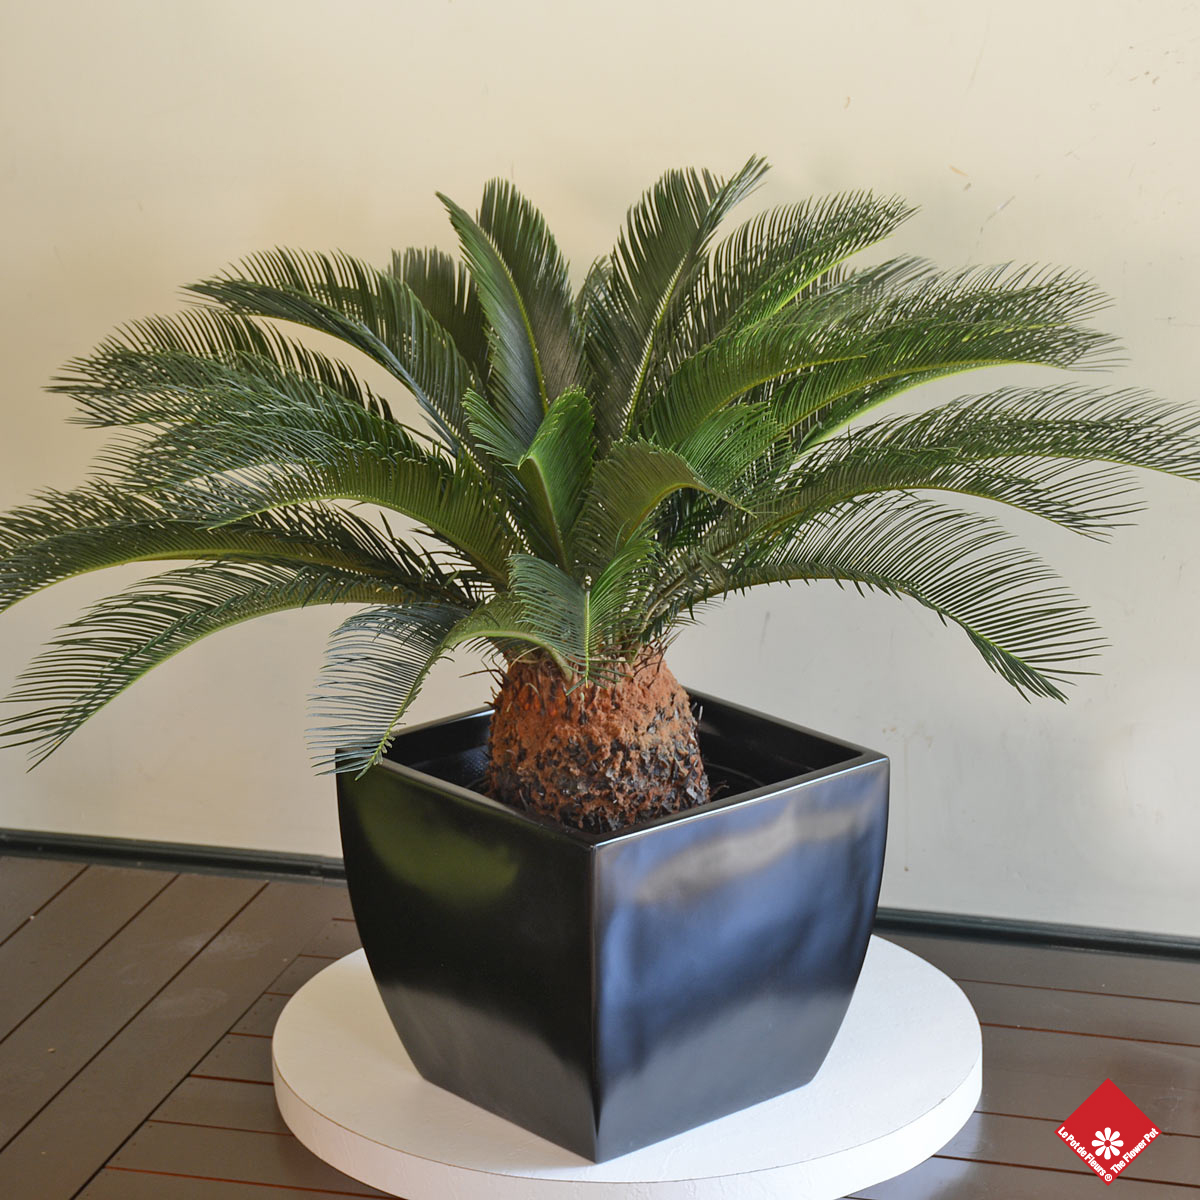 This beloved green plant called Cycad revoluta is the perfect addition to any living room decorating project: it's easy to care for, very eye-catching, and available at The Flower Pot.